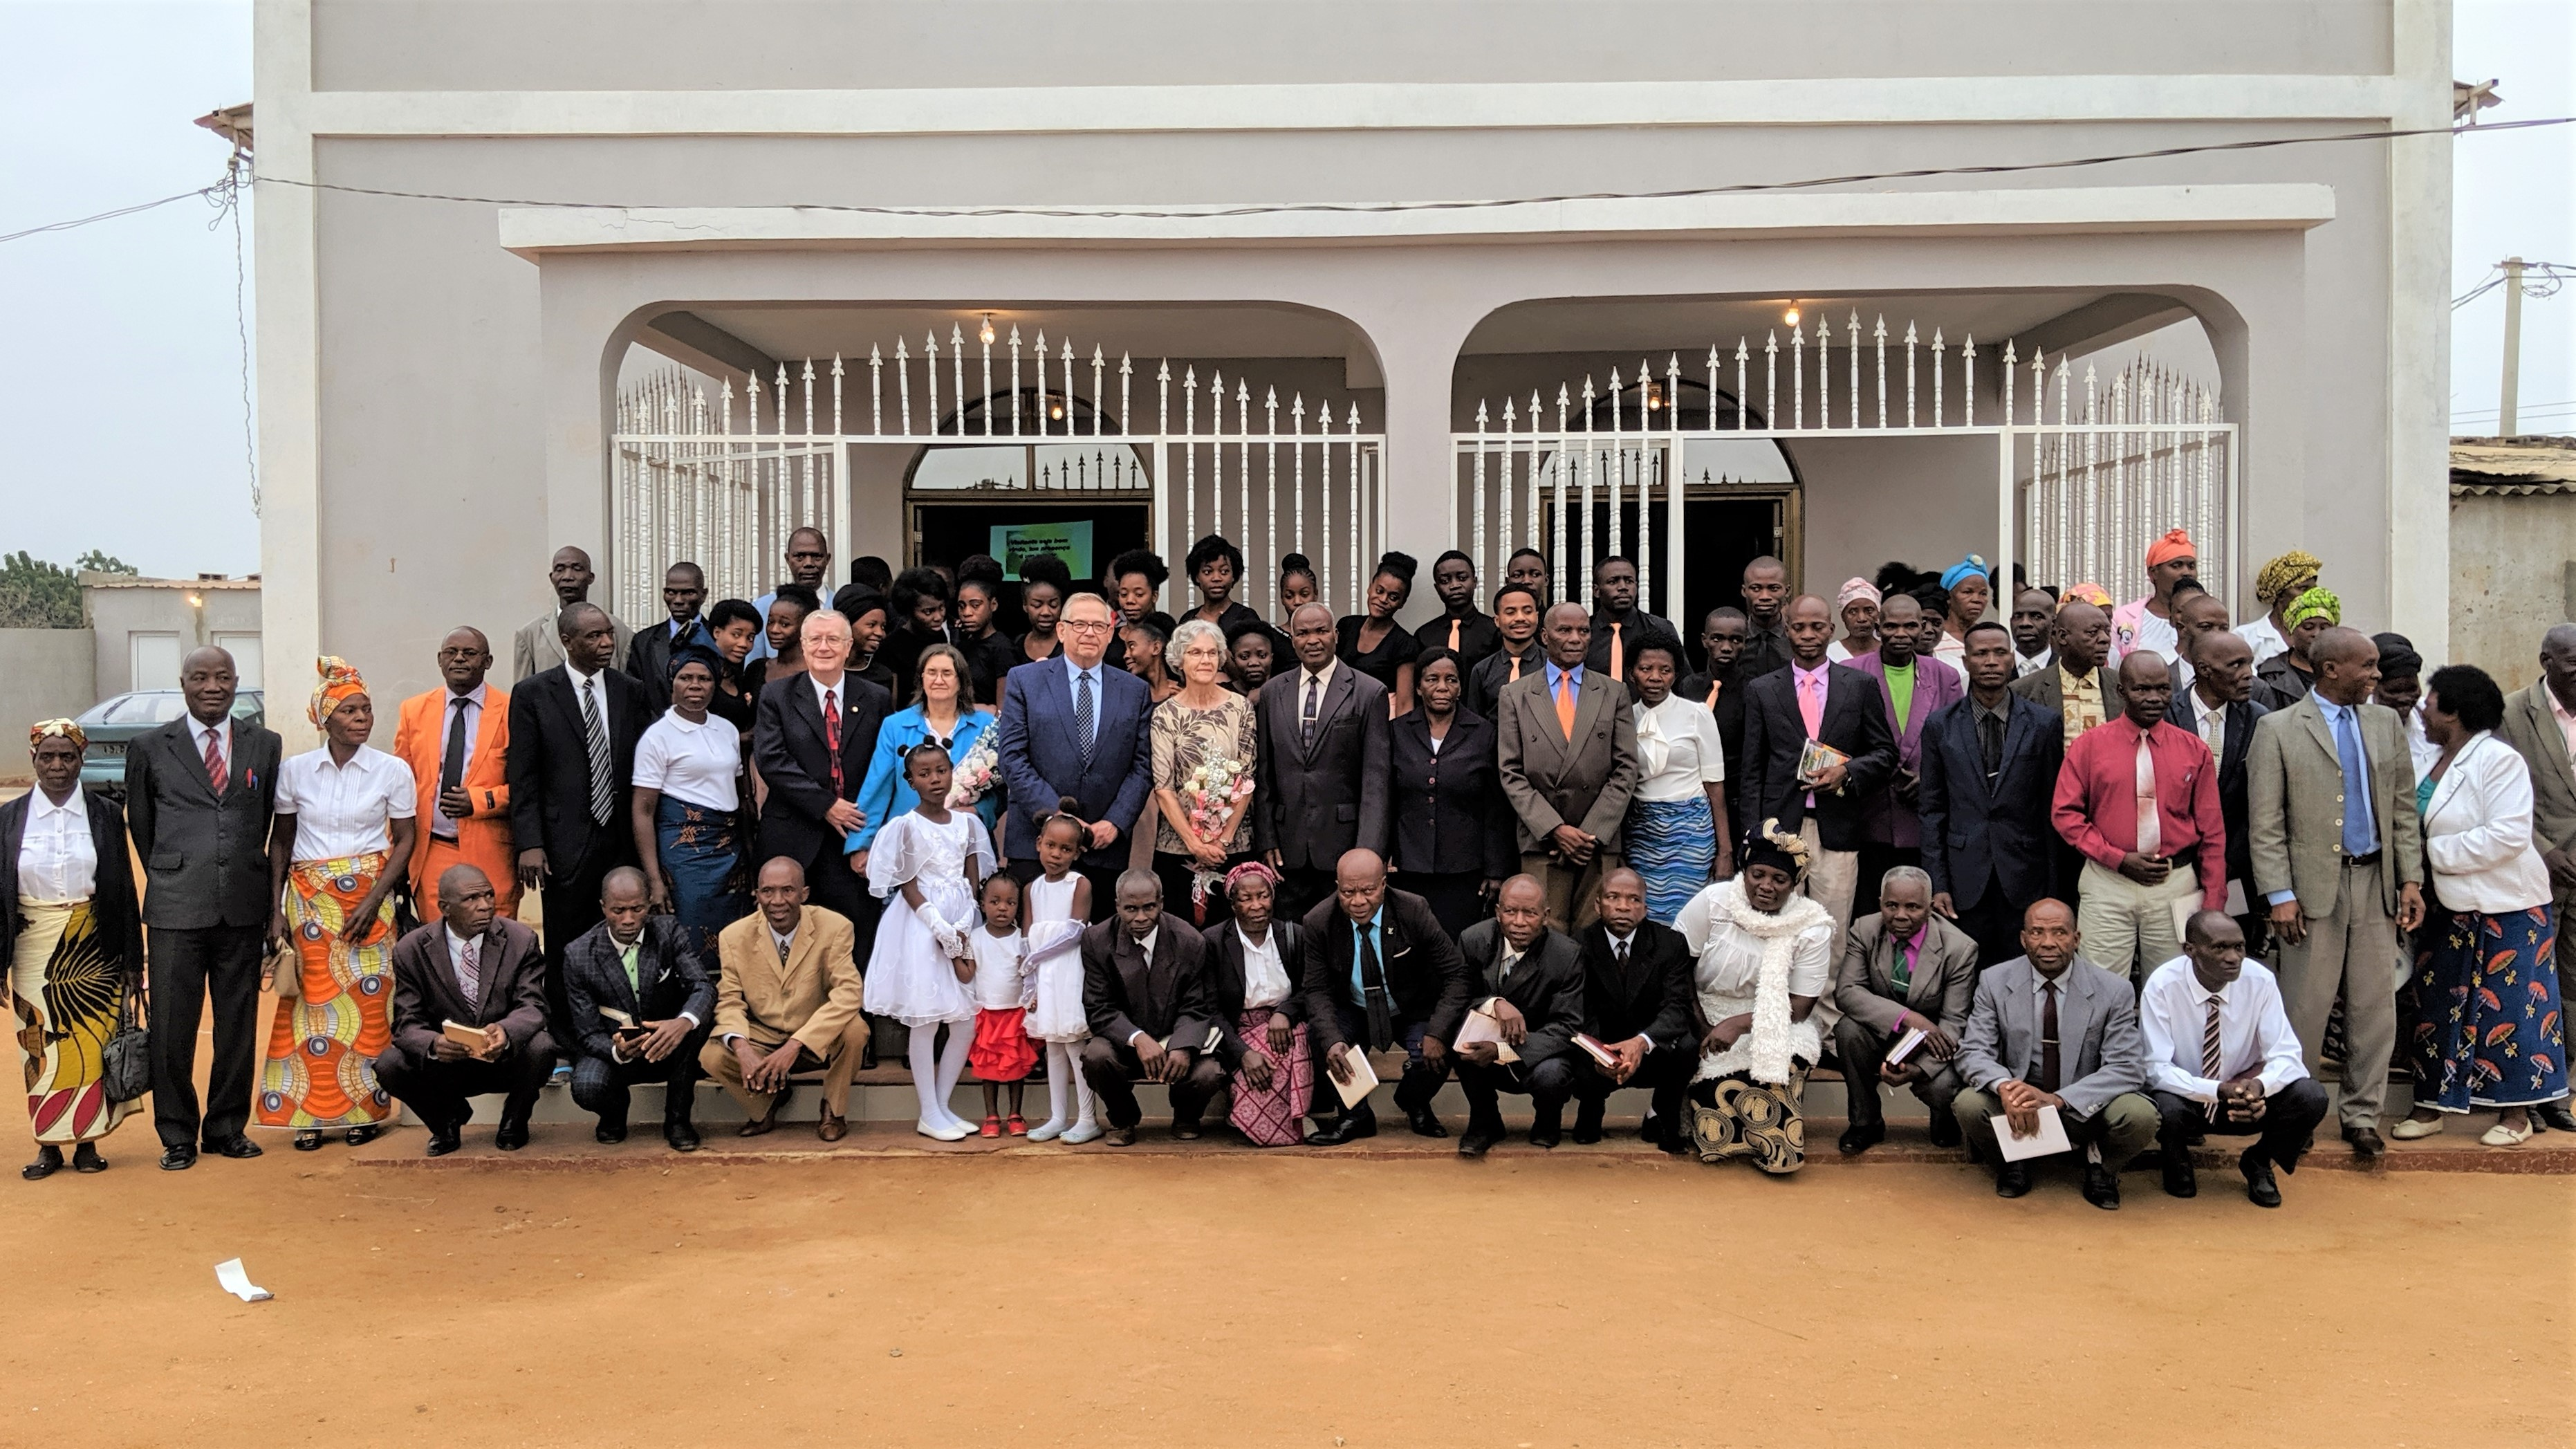 The Vidral congregation in Luanda in front of their church building.